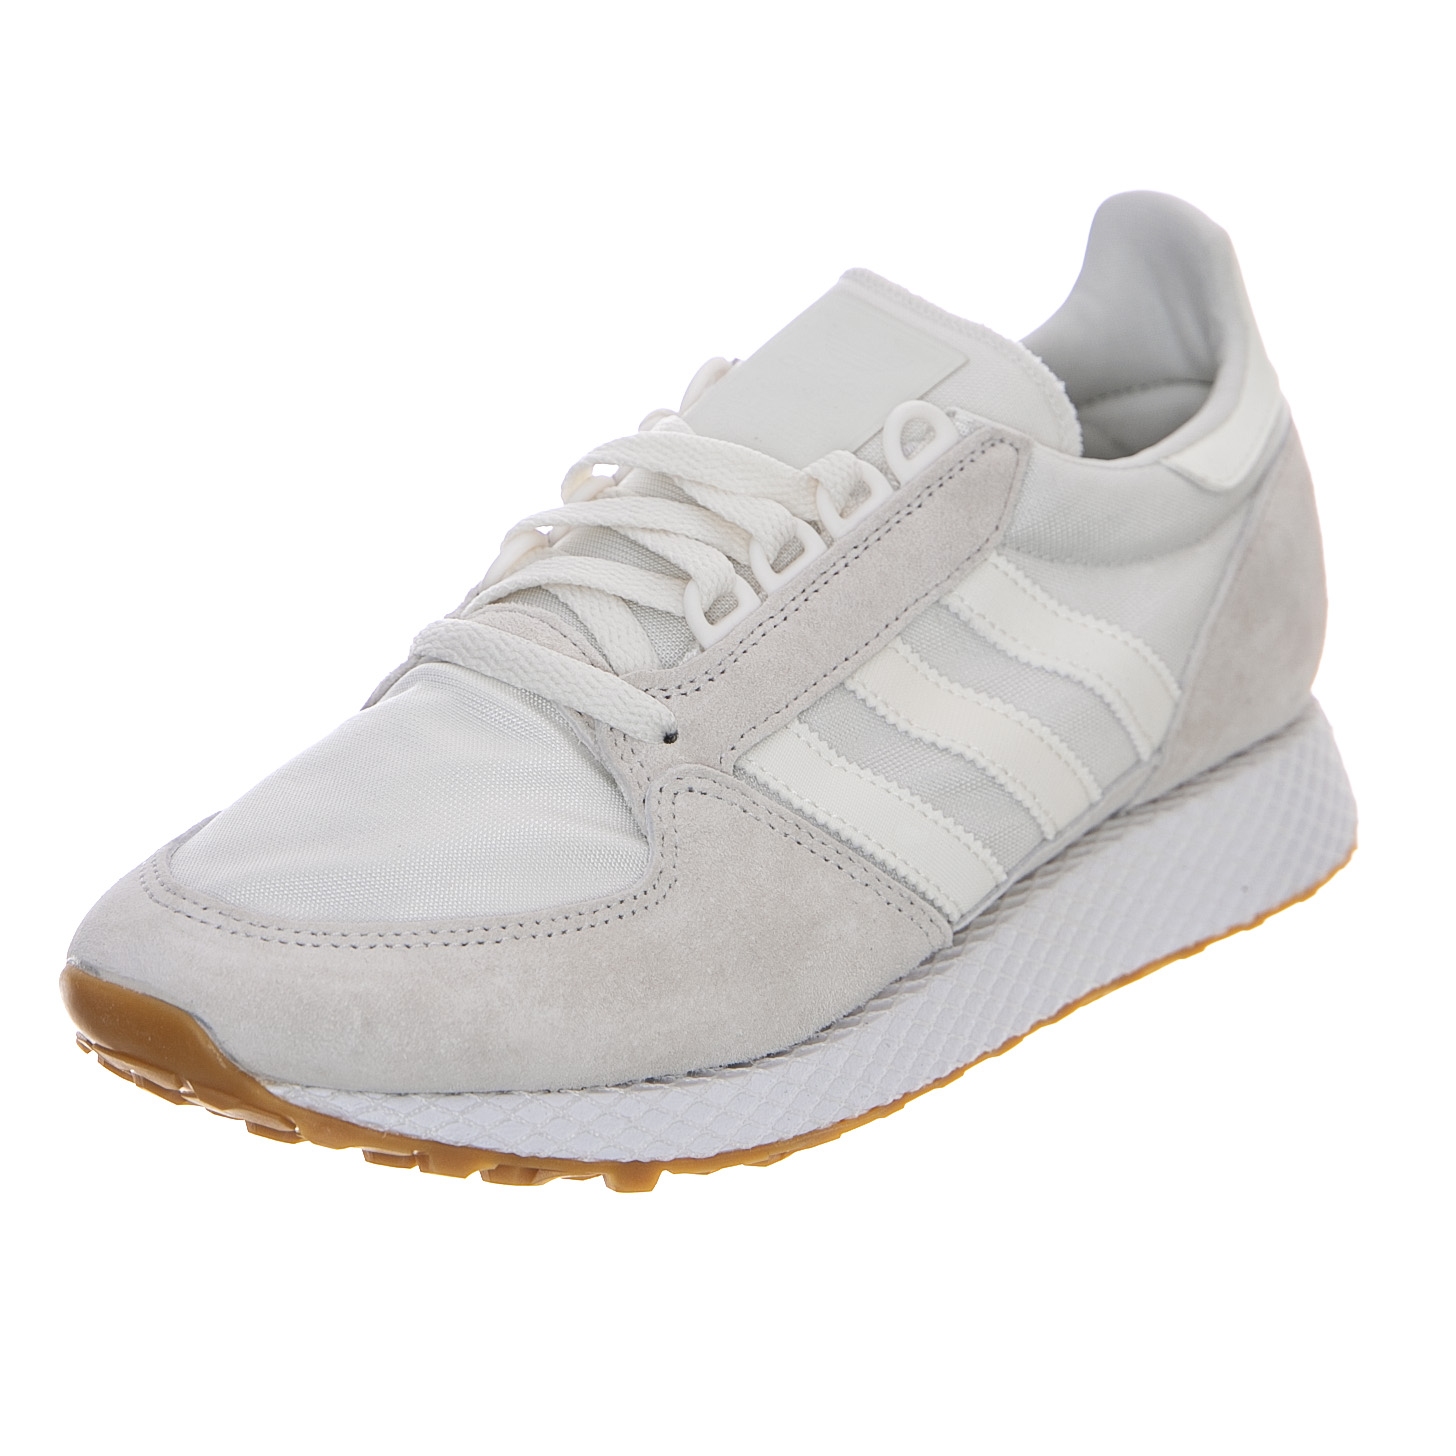 new product 9f2c8 bfc7a Adidas Forest Grove - Cloud White - Sneakers Basse Uomo Bianco